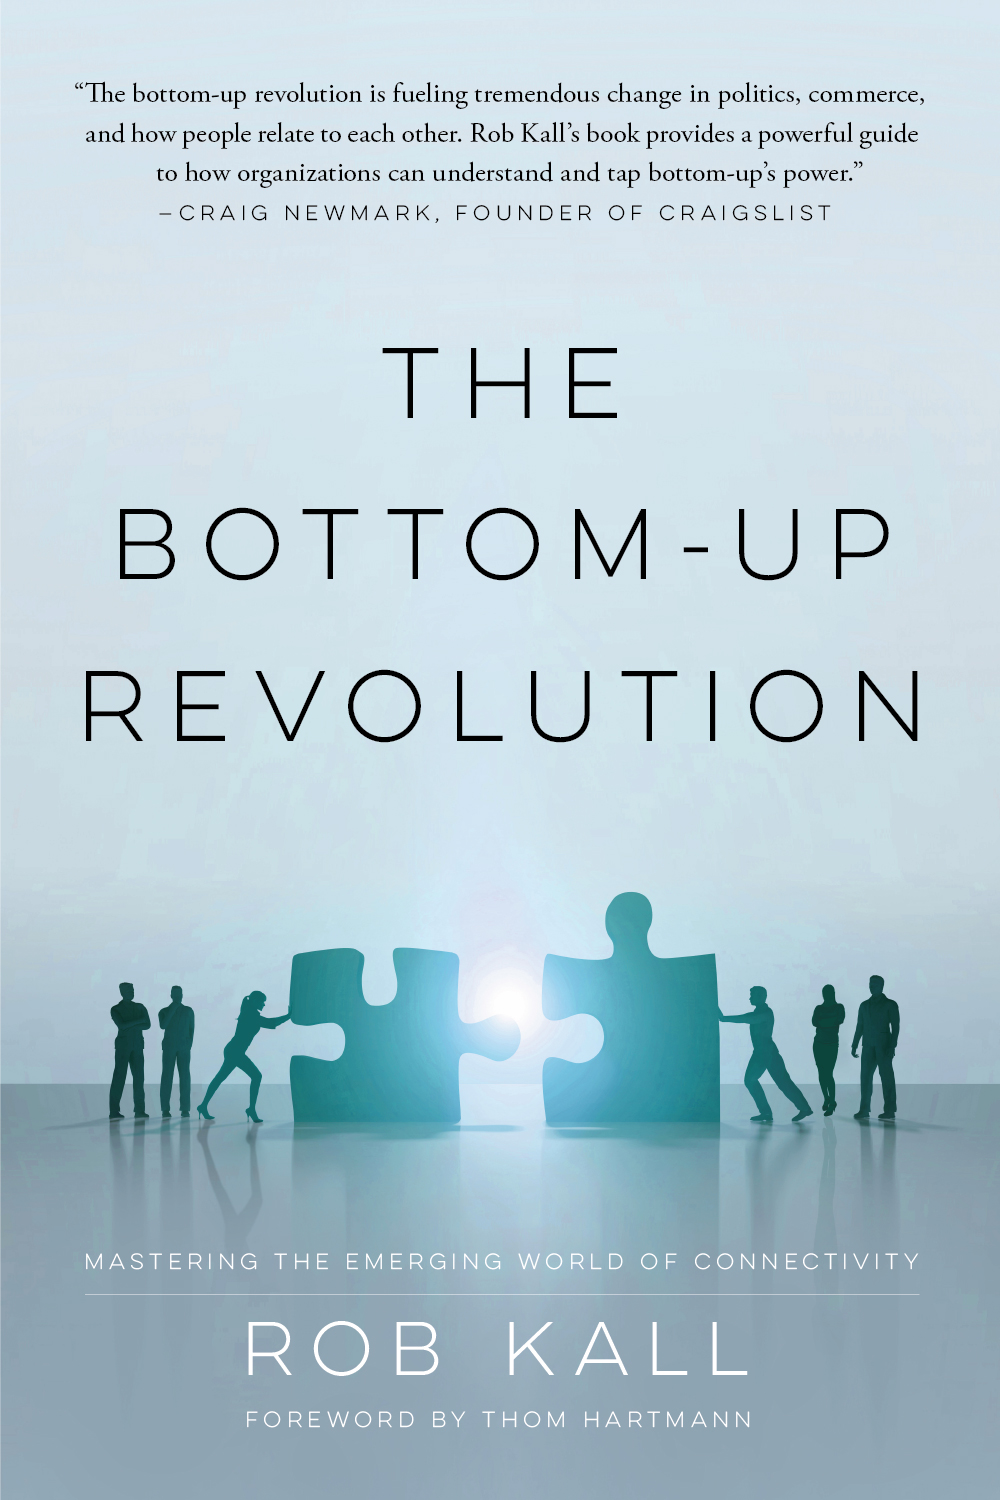 The Bottom-up Revolution